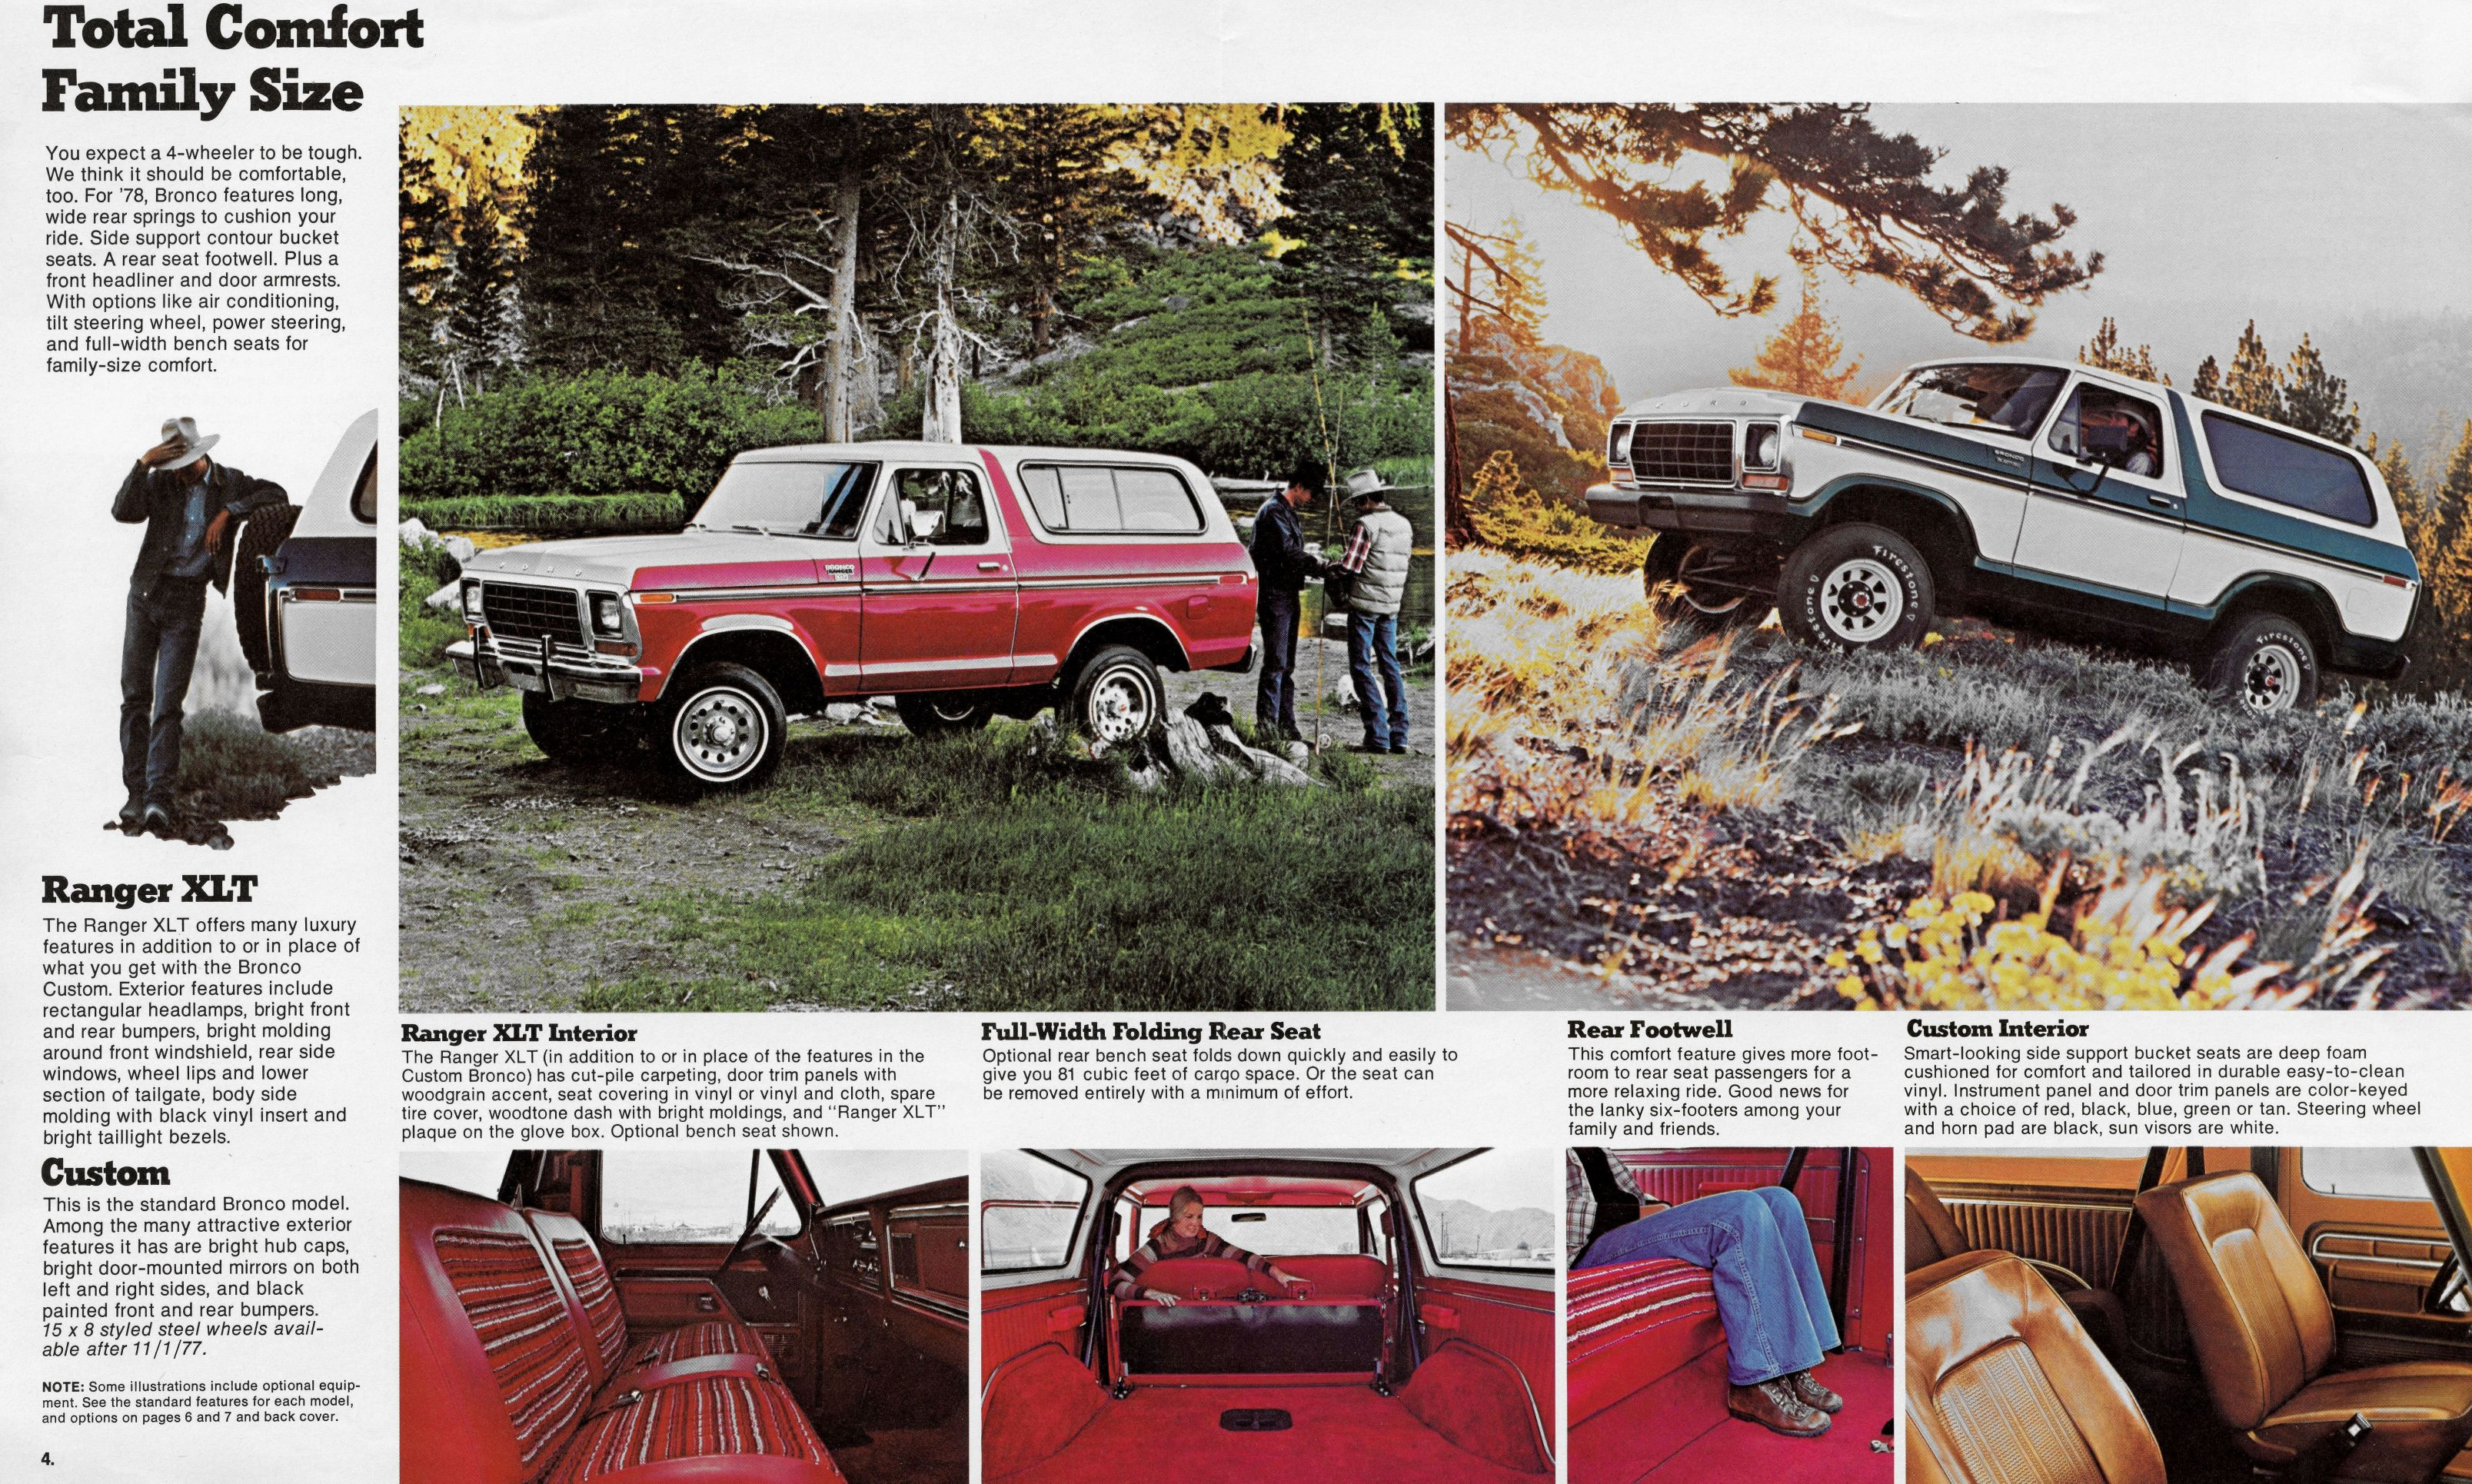 1978 Ford Bronco Brochure